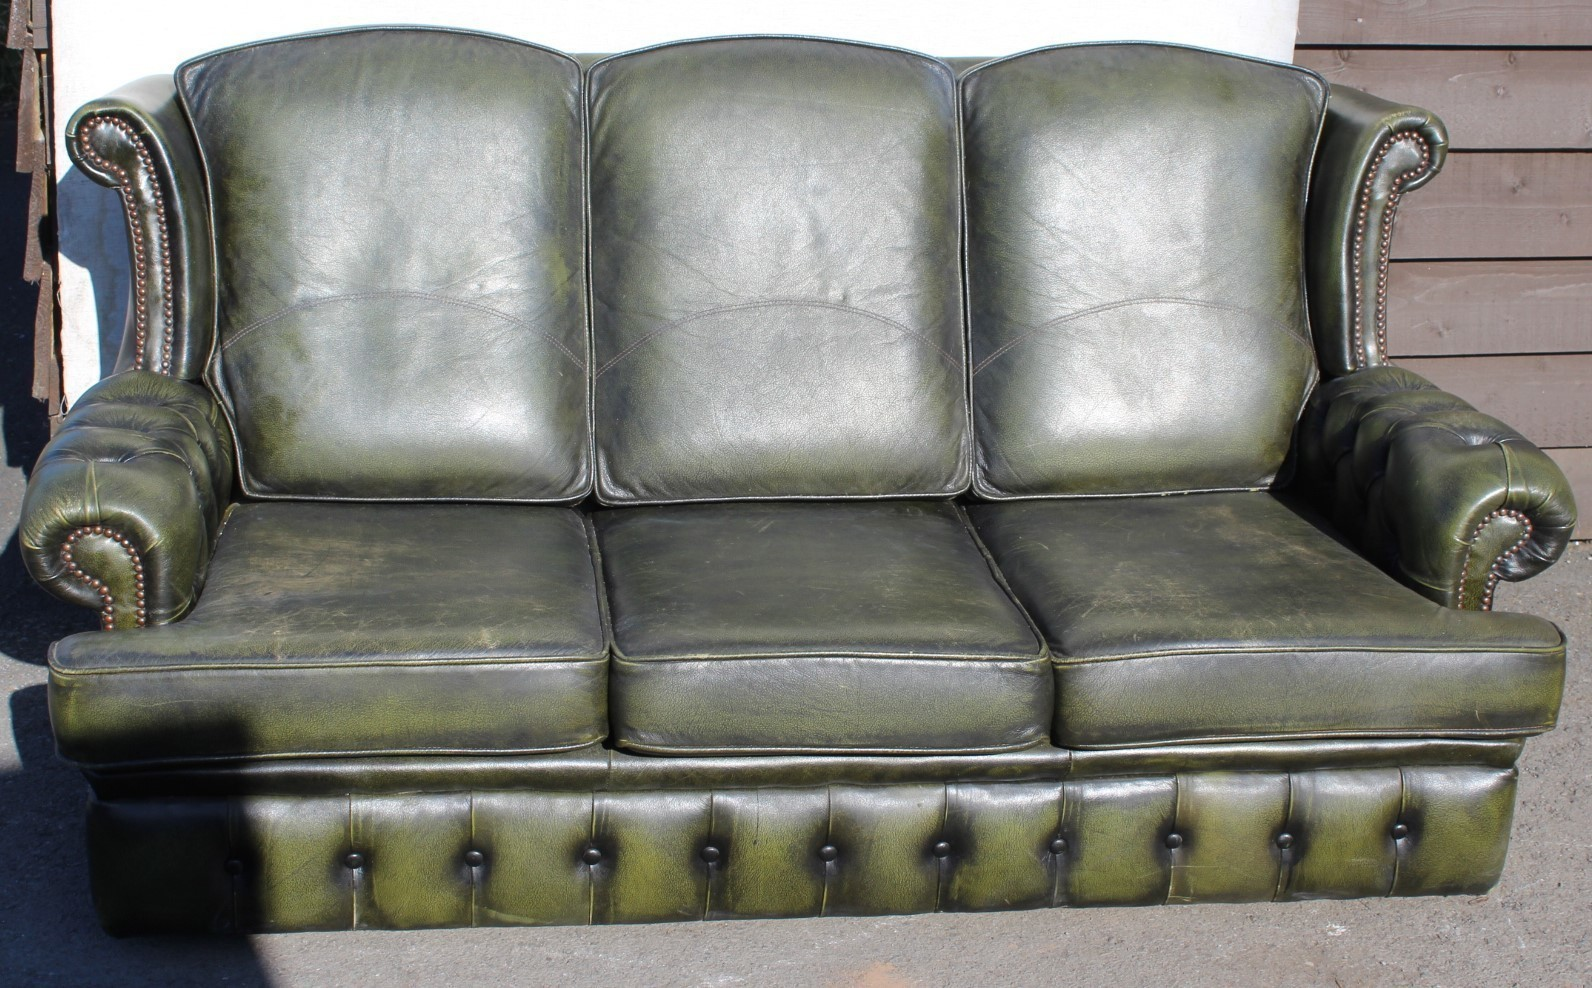 1960s High Back Green Leather 3 Seater Chesterfield Sofa | Vinterior